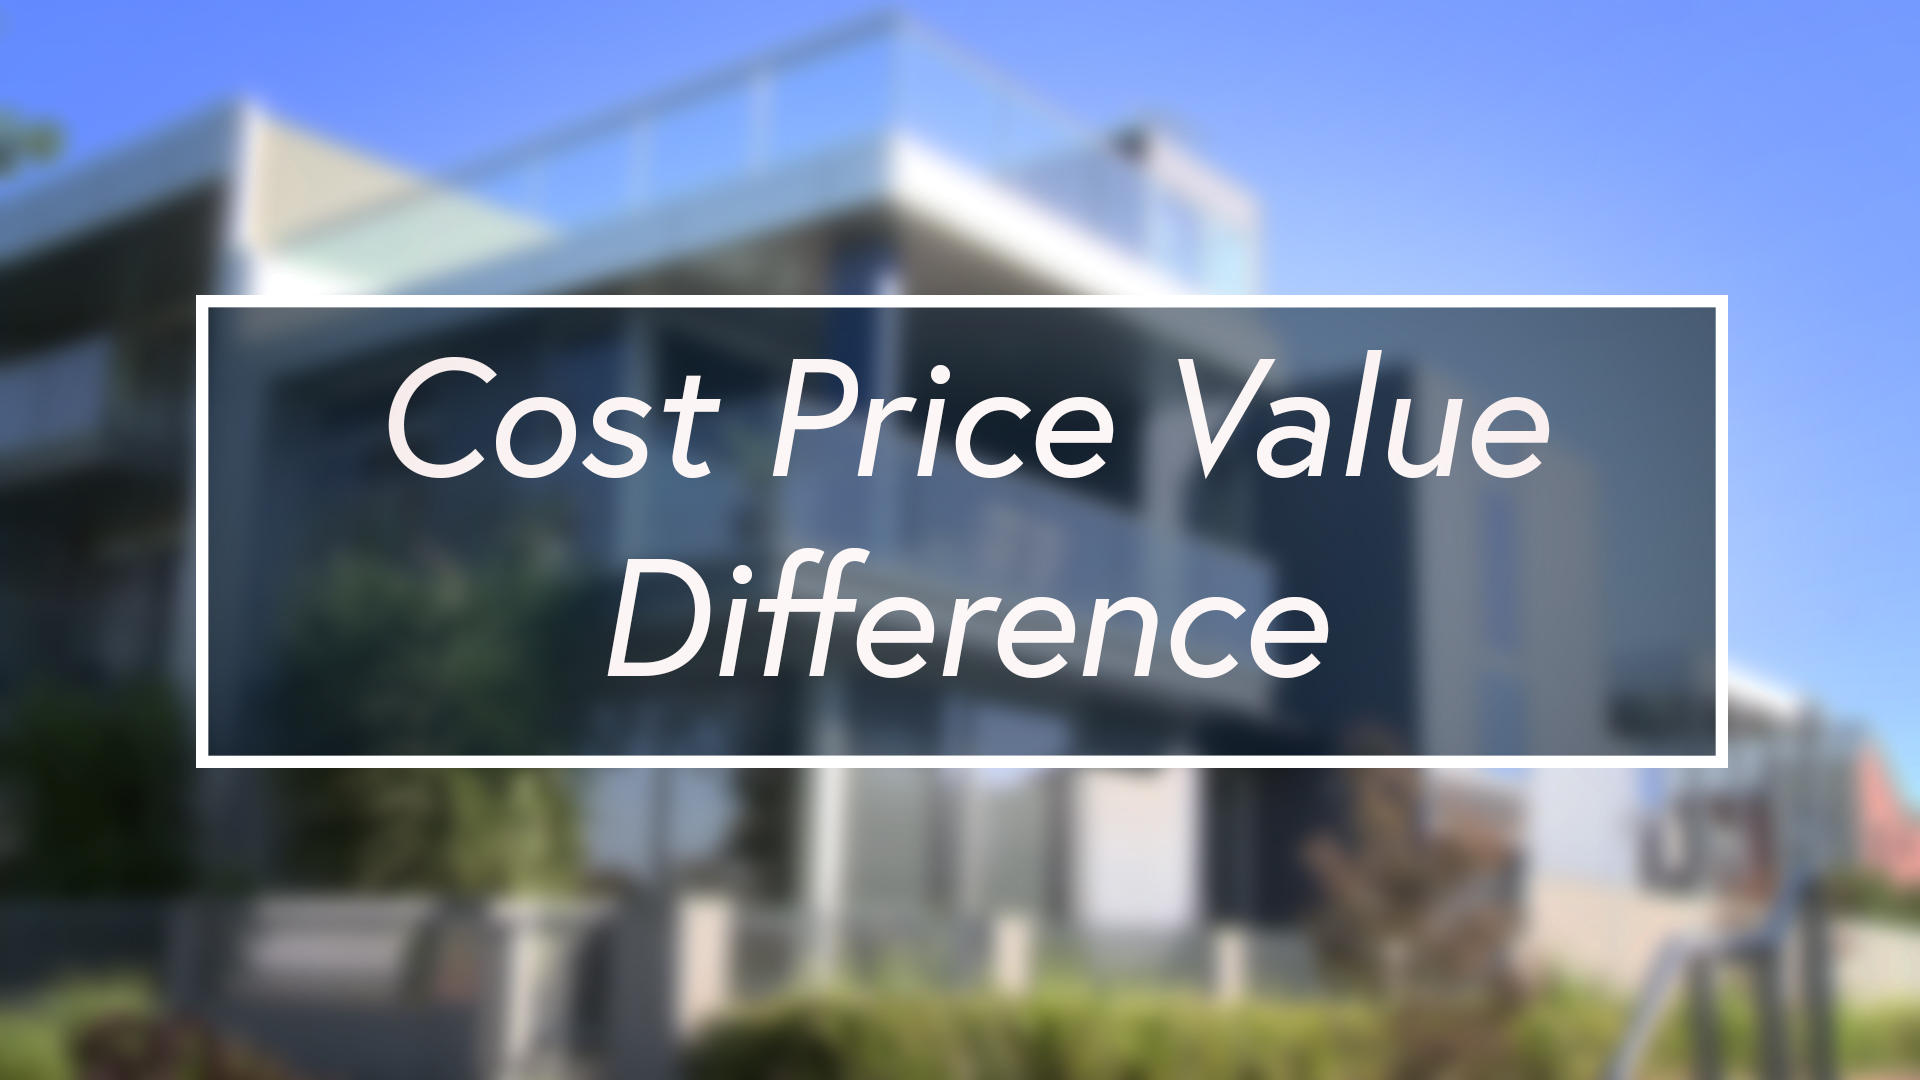 Cost, price, value - what is the difference?